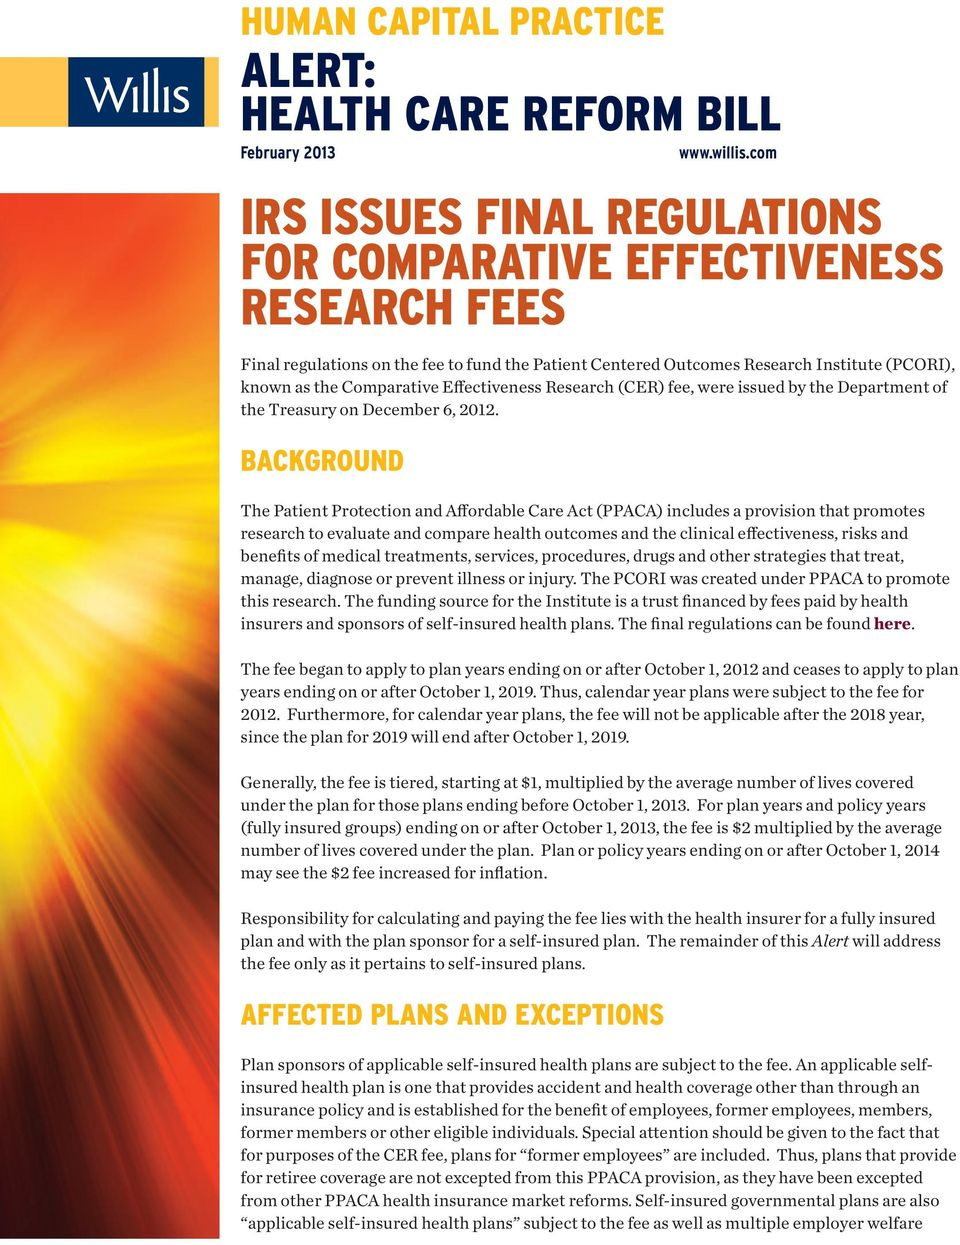 Effectiveness Research (CER) fee, were issued by the Department of the Treasury on December 6, 2012.